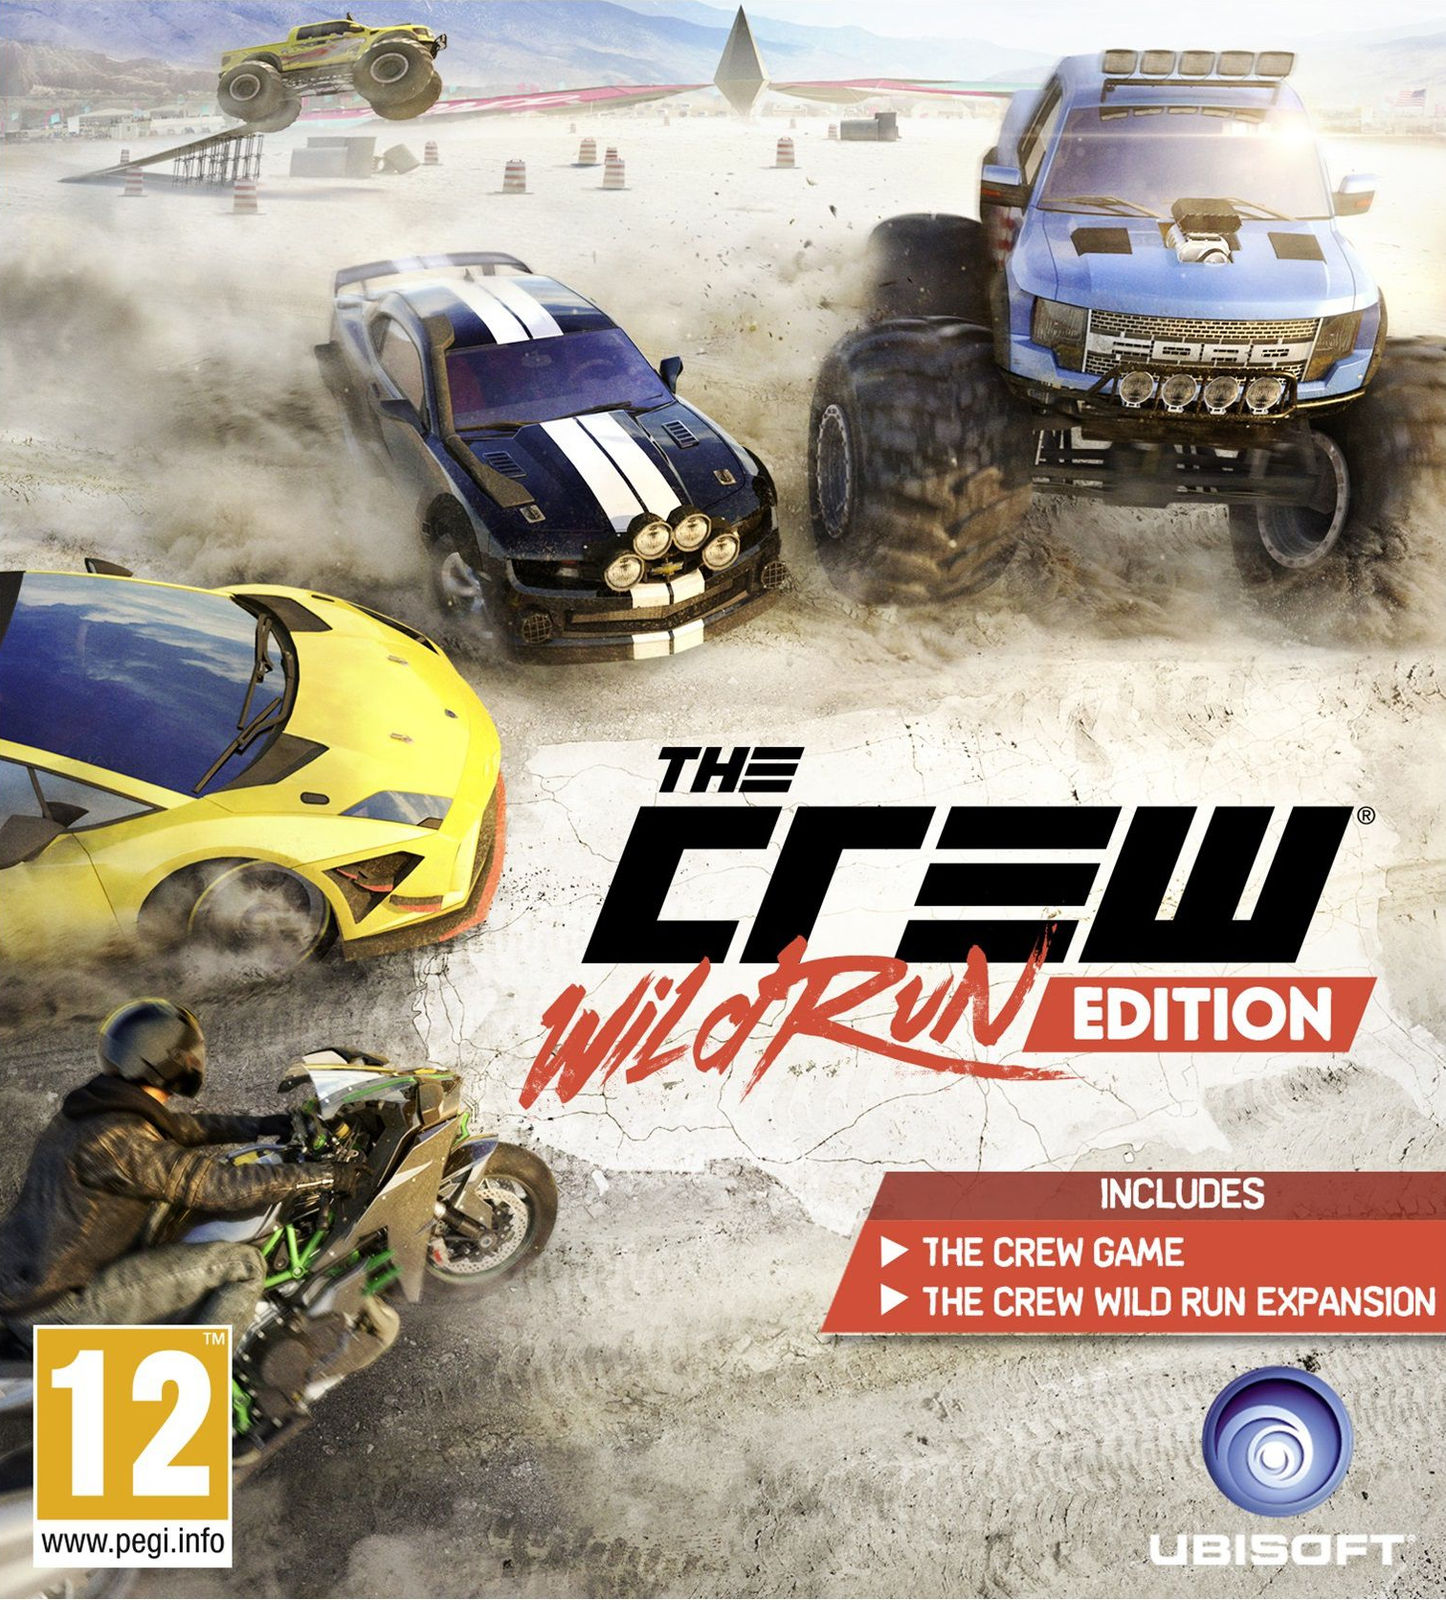 z The Crew Wild Run Edition (Uplay) RU/CIS